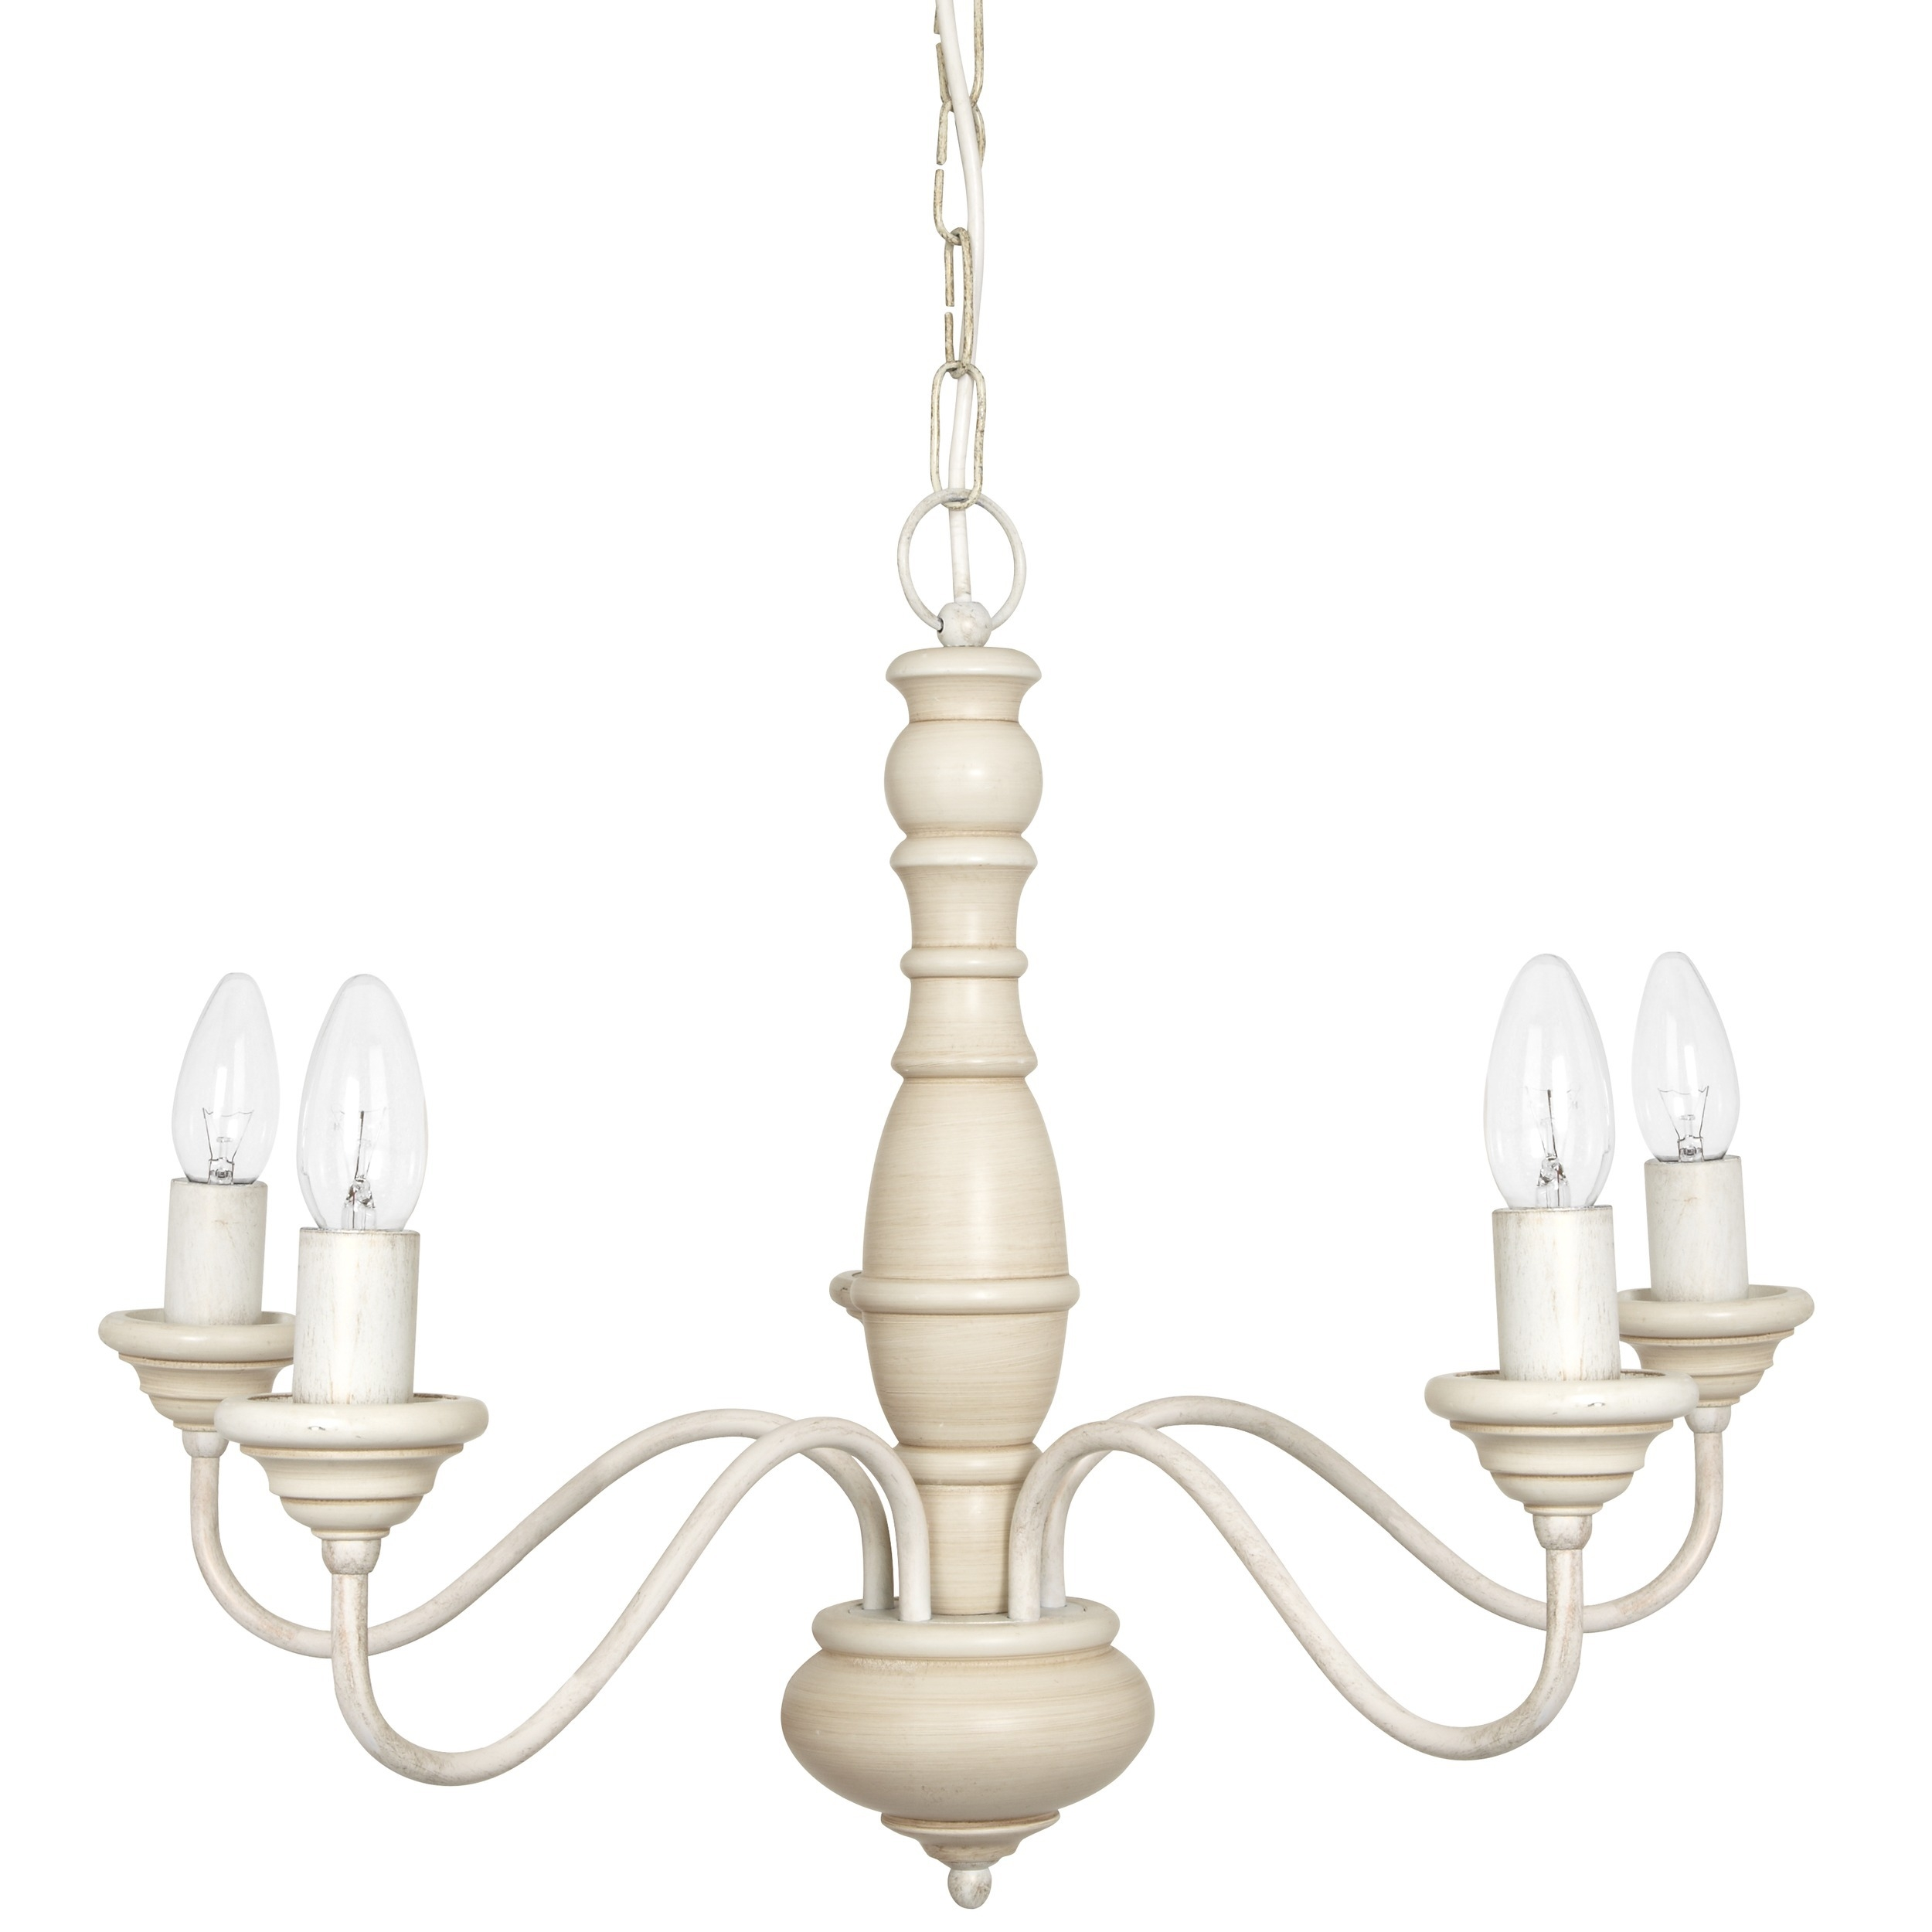 Milnsbridge Cream 5 Light Chandelier At Laura Ashley With Regard To Large Cream Chandelier (Image 13 of 15)